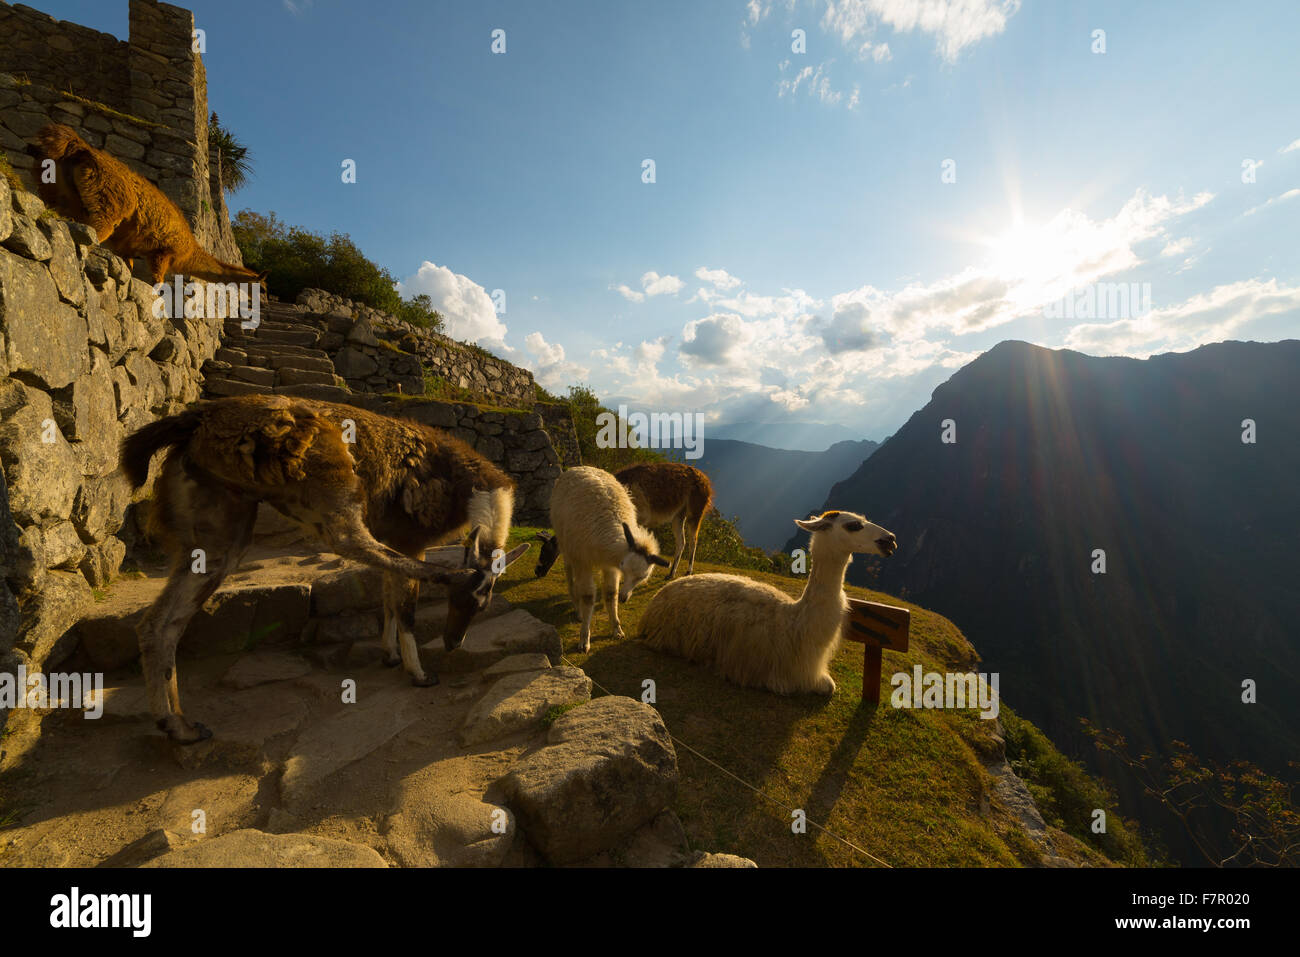 Group of llamas glowing in backlight on Machu Picchu terraces, Peru. Wide angle view in afternoon sunlight and blue - Stock Image